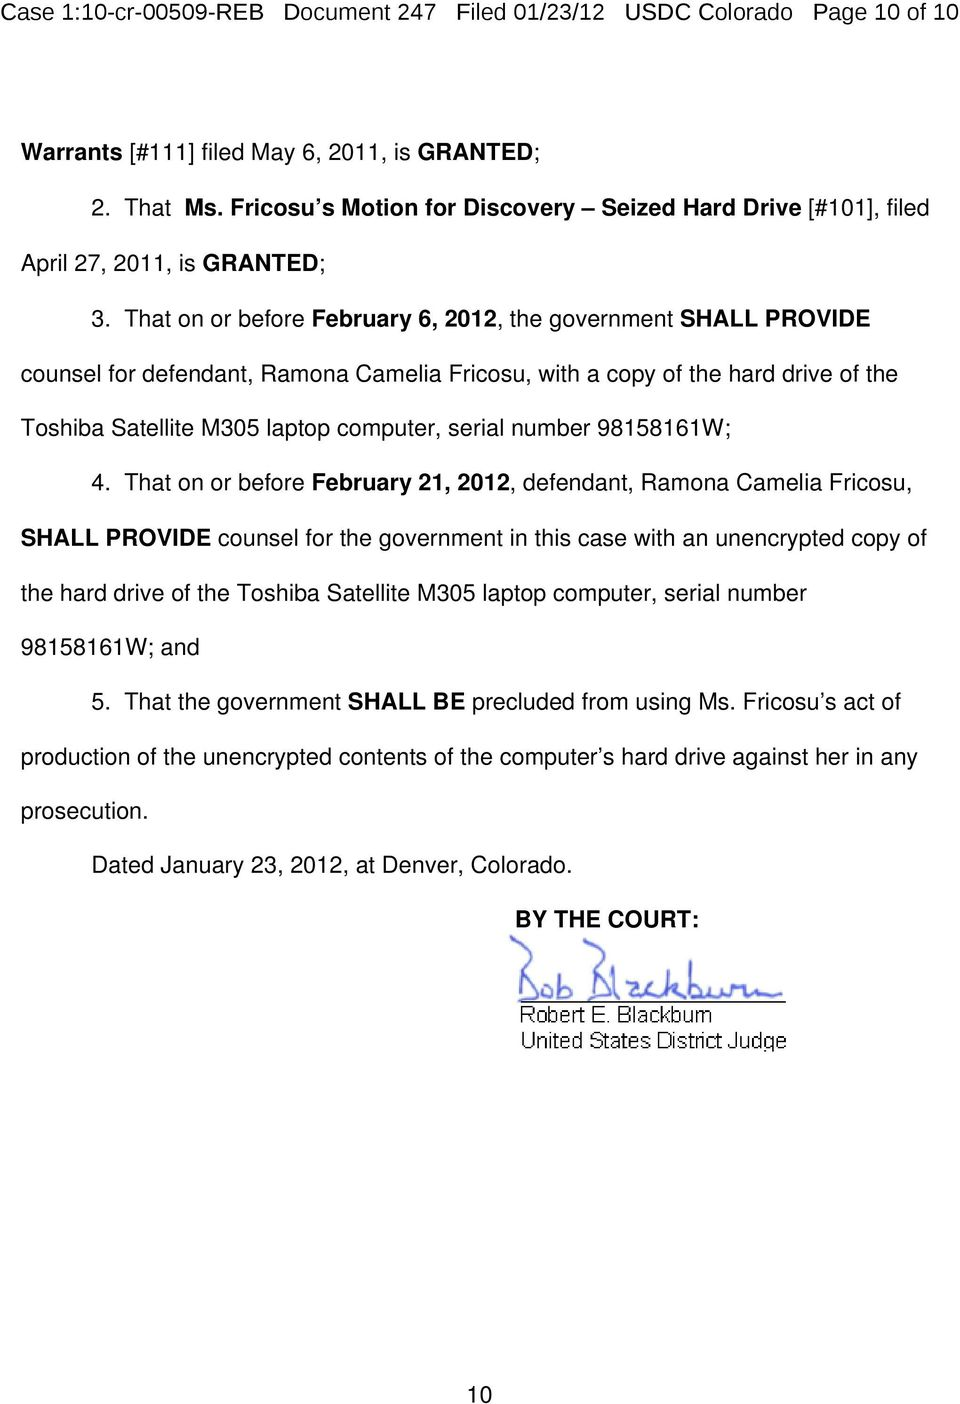 That on or before February 6, 2012, the government SHALL PROVIDE counsel for defendant, Ramona Camelia Fricosu, with a copy of the hard drive of the Toshiba Satellite M305 laptop computer, serial